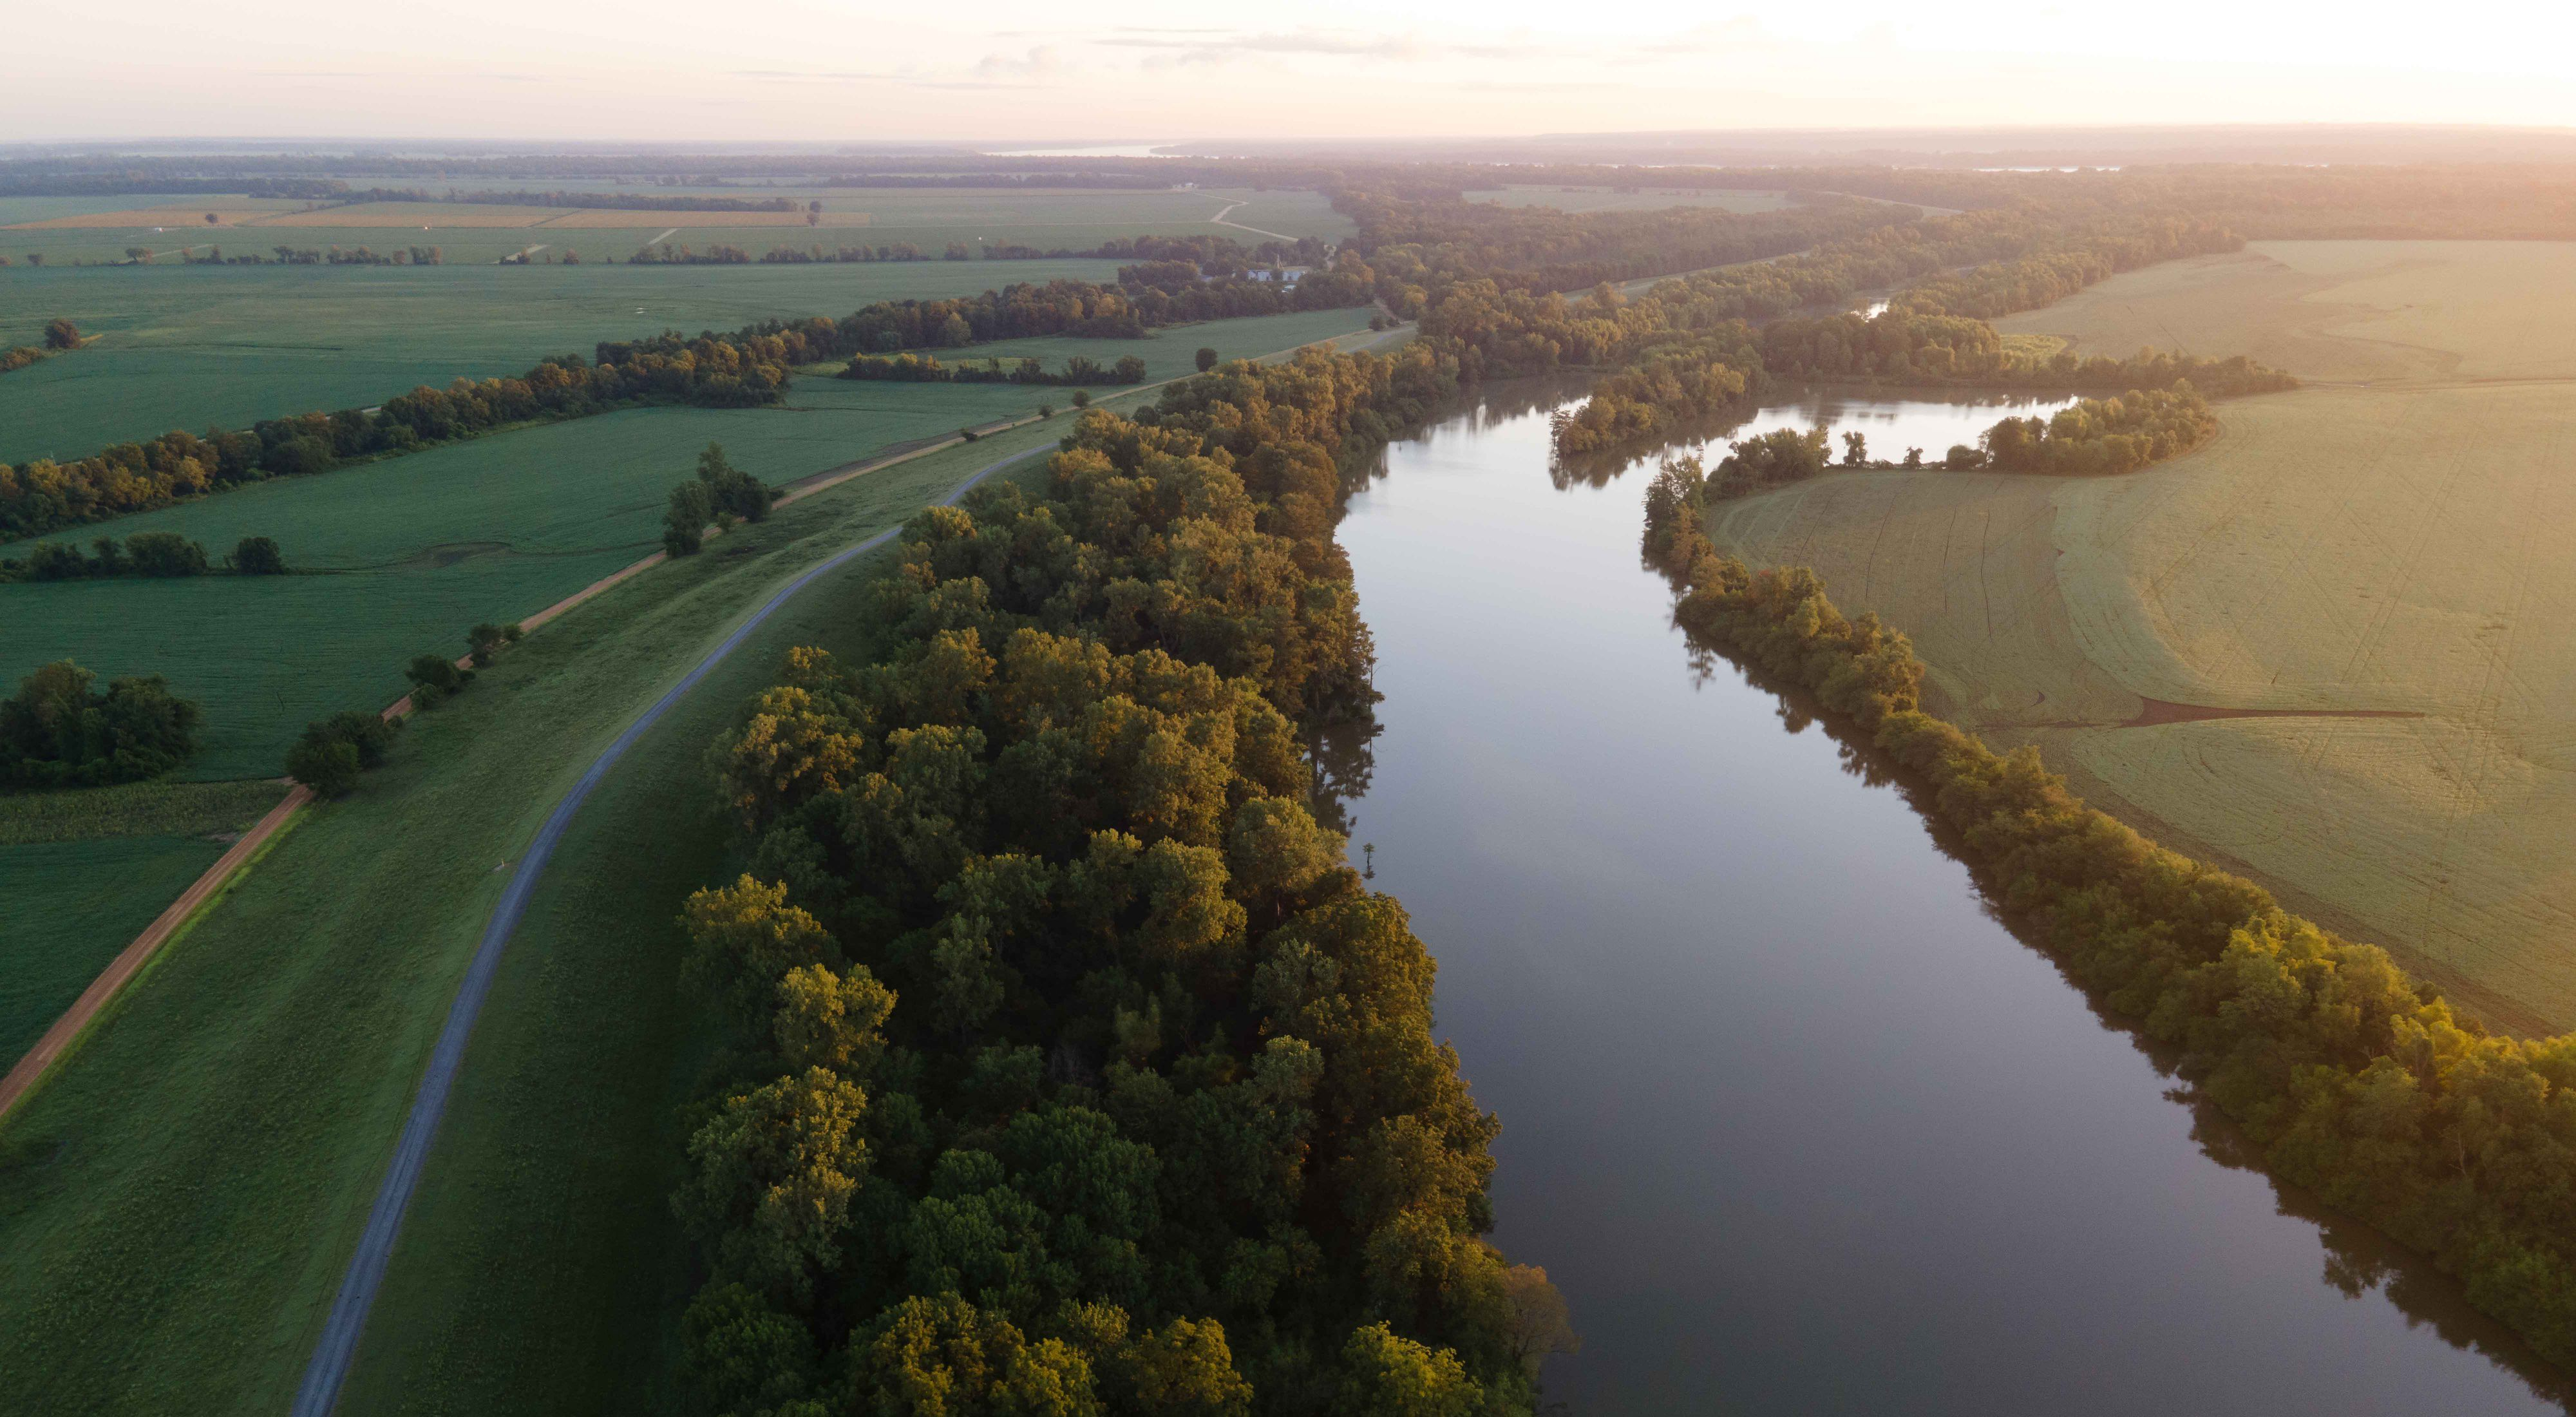 A river winds through forest and farmland.